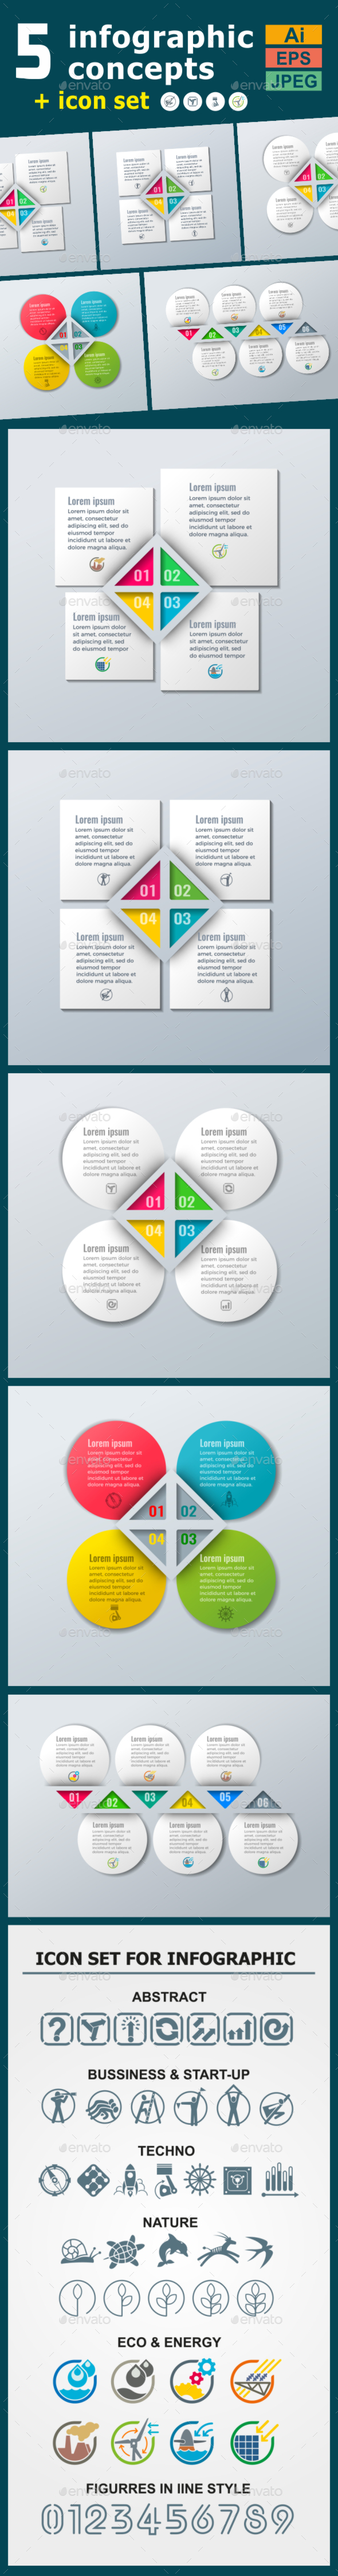 Infographic Templates in Paper Style. v.06 - Infographics